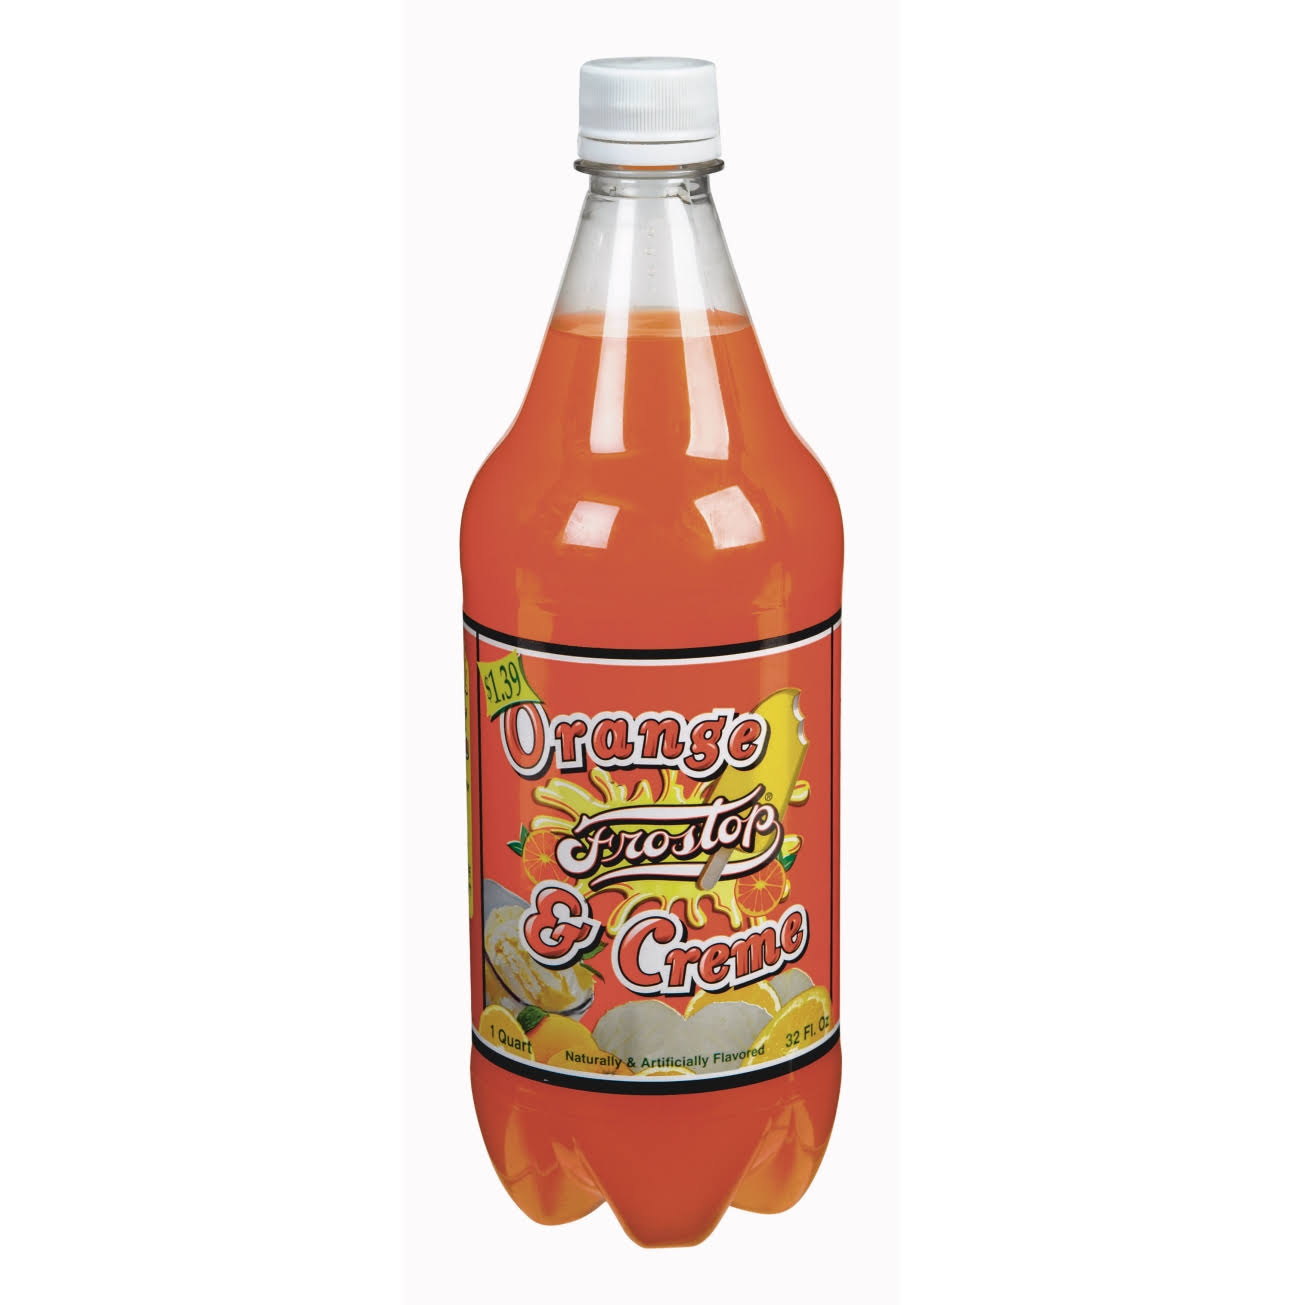 Frostop Orange & Cream Soda